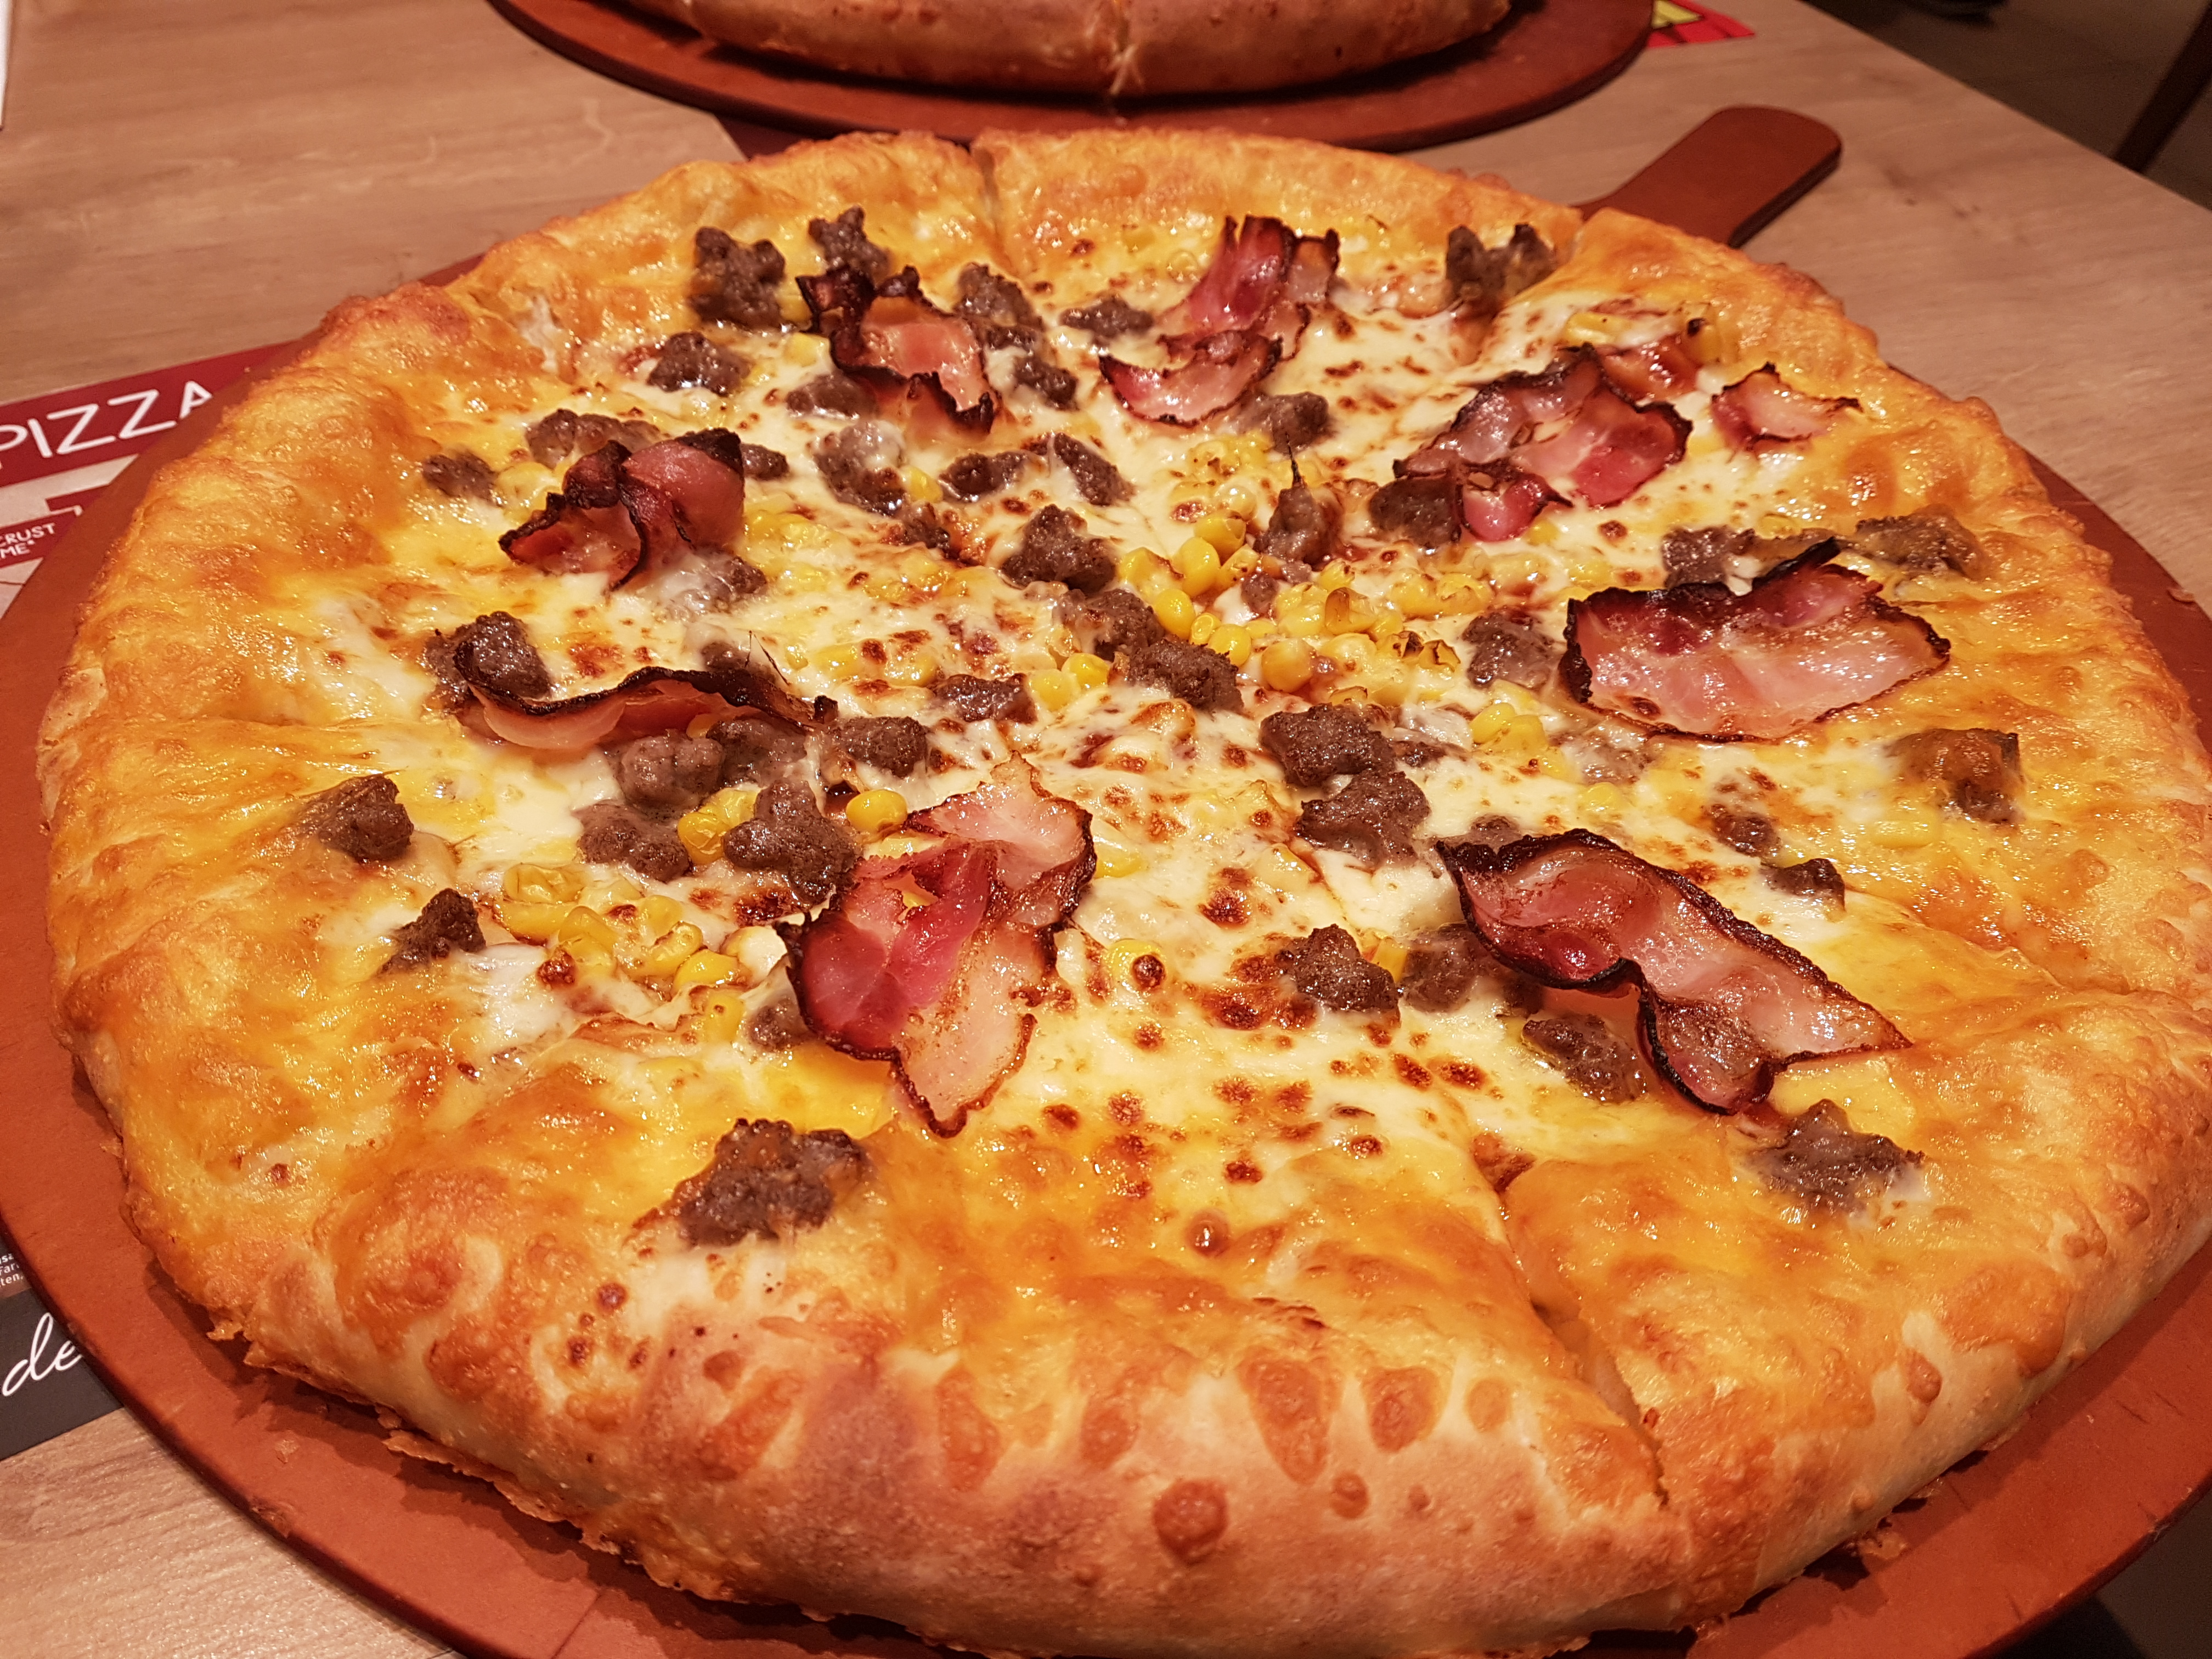 Holz • 2017-11-30 • Pizza Hut Golden Cheesy Crust BBQ Lovers